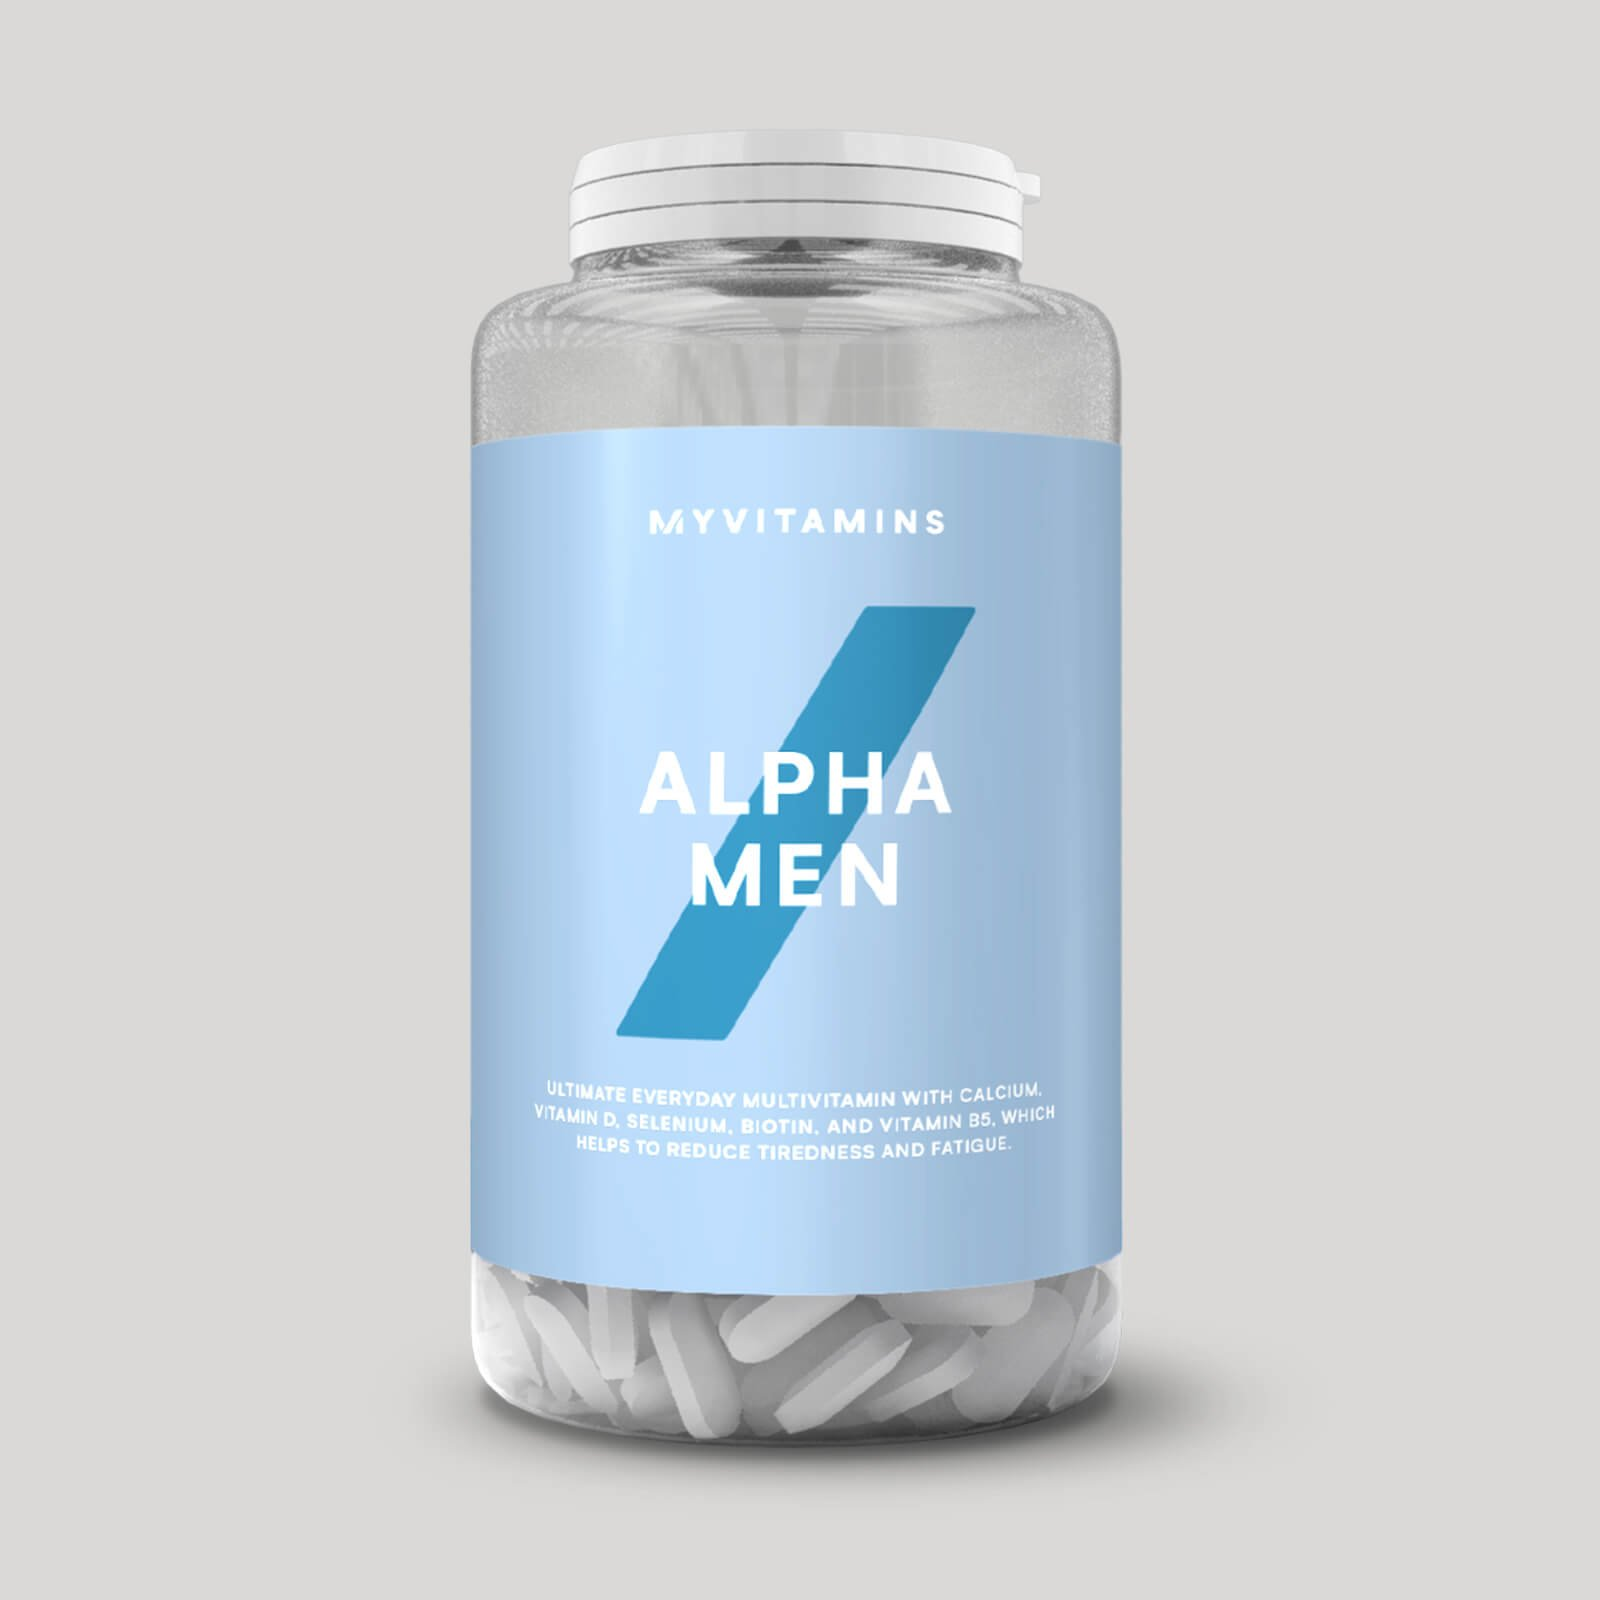 Alpha Men vitamins & minerals MYVITAMINS (240 tablets)